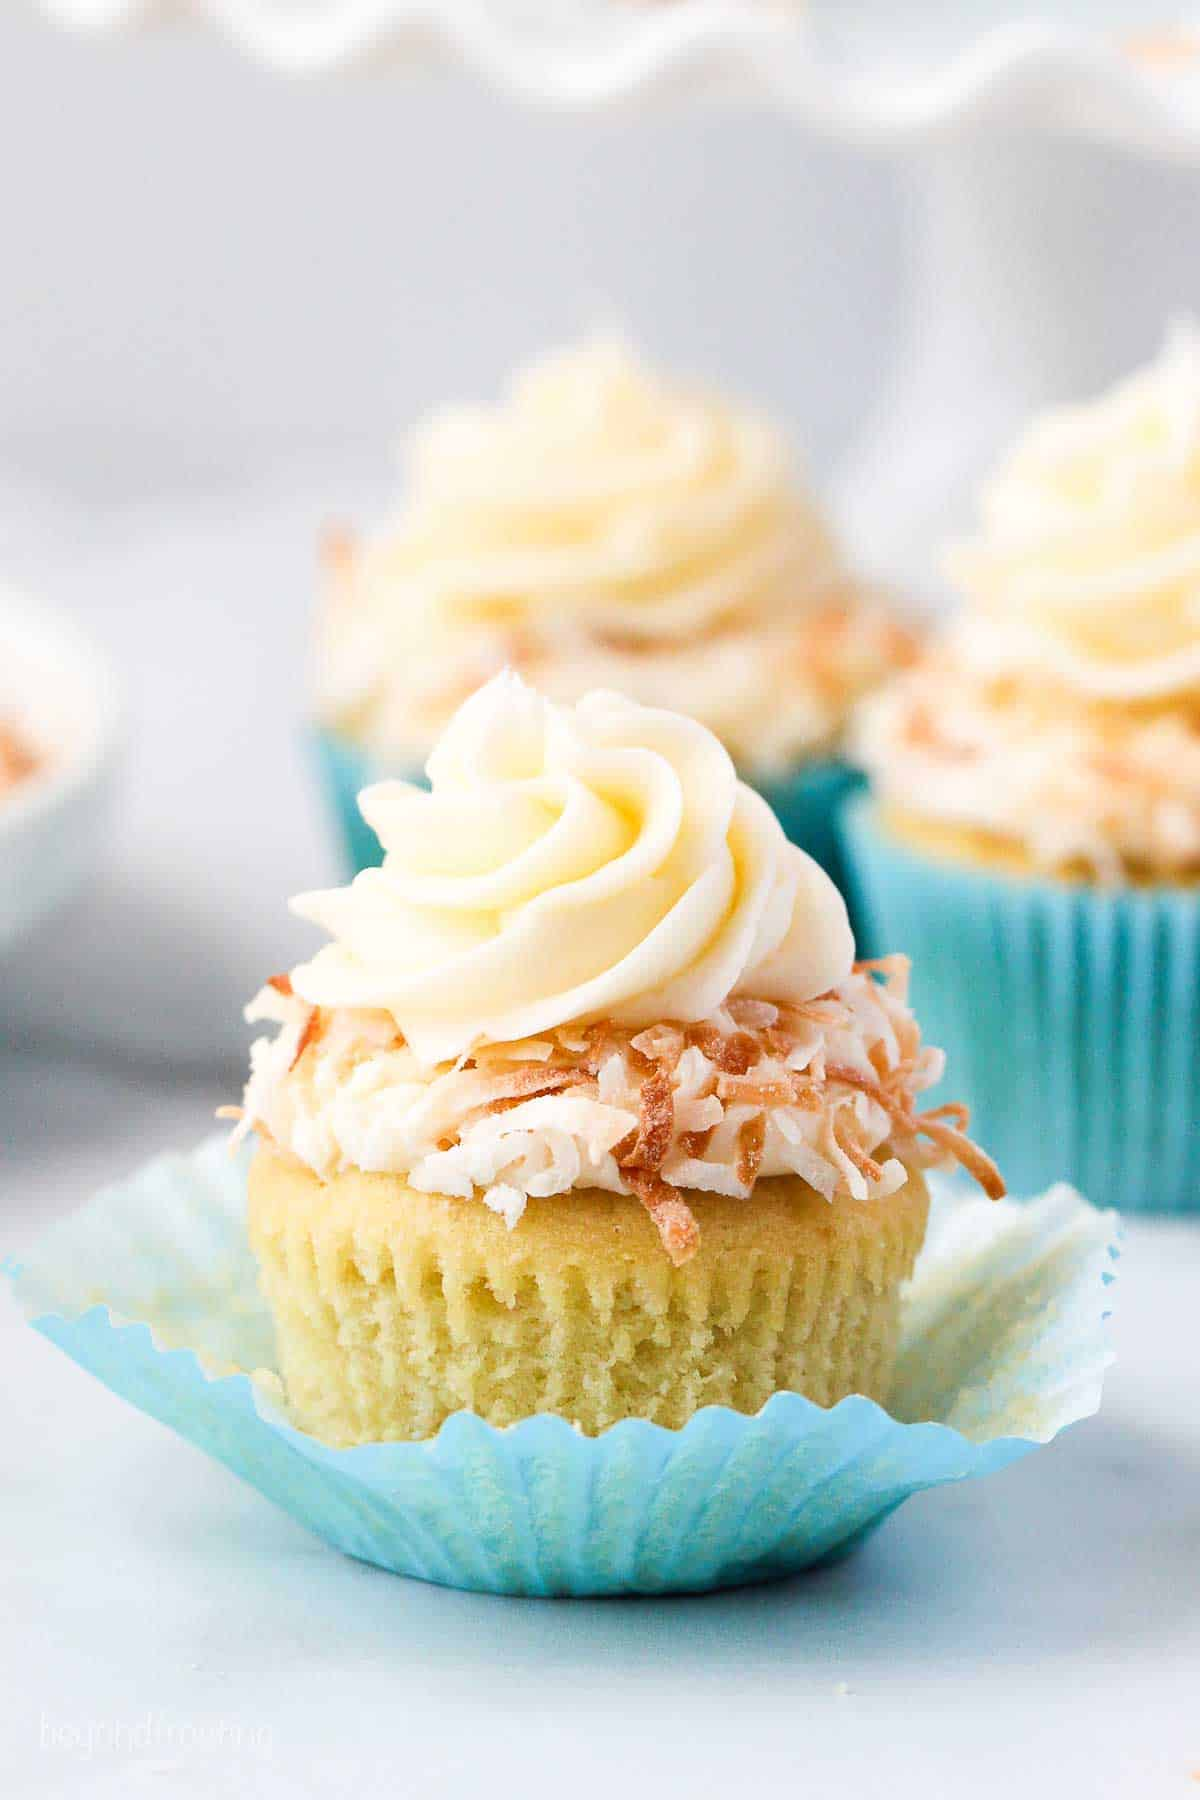 A coconut cupcake topped with cream cheese frosting and toasted coconut